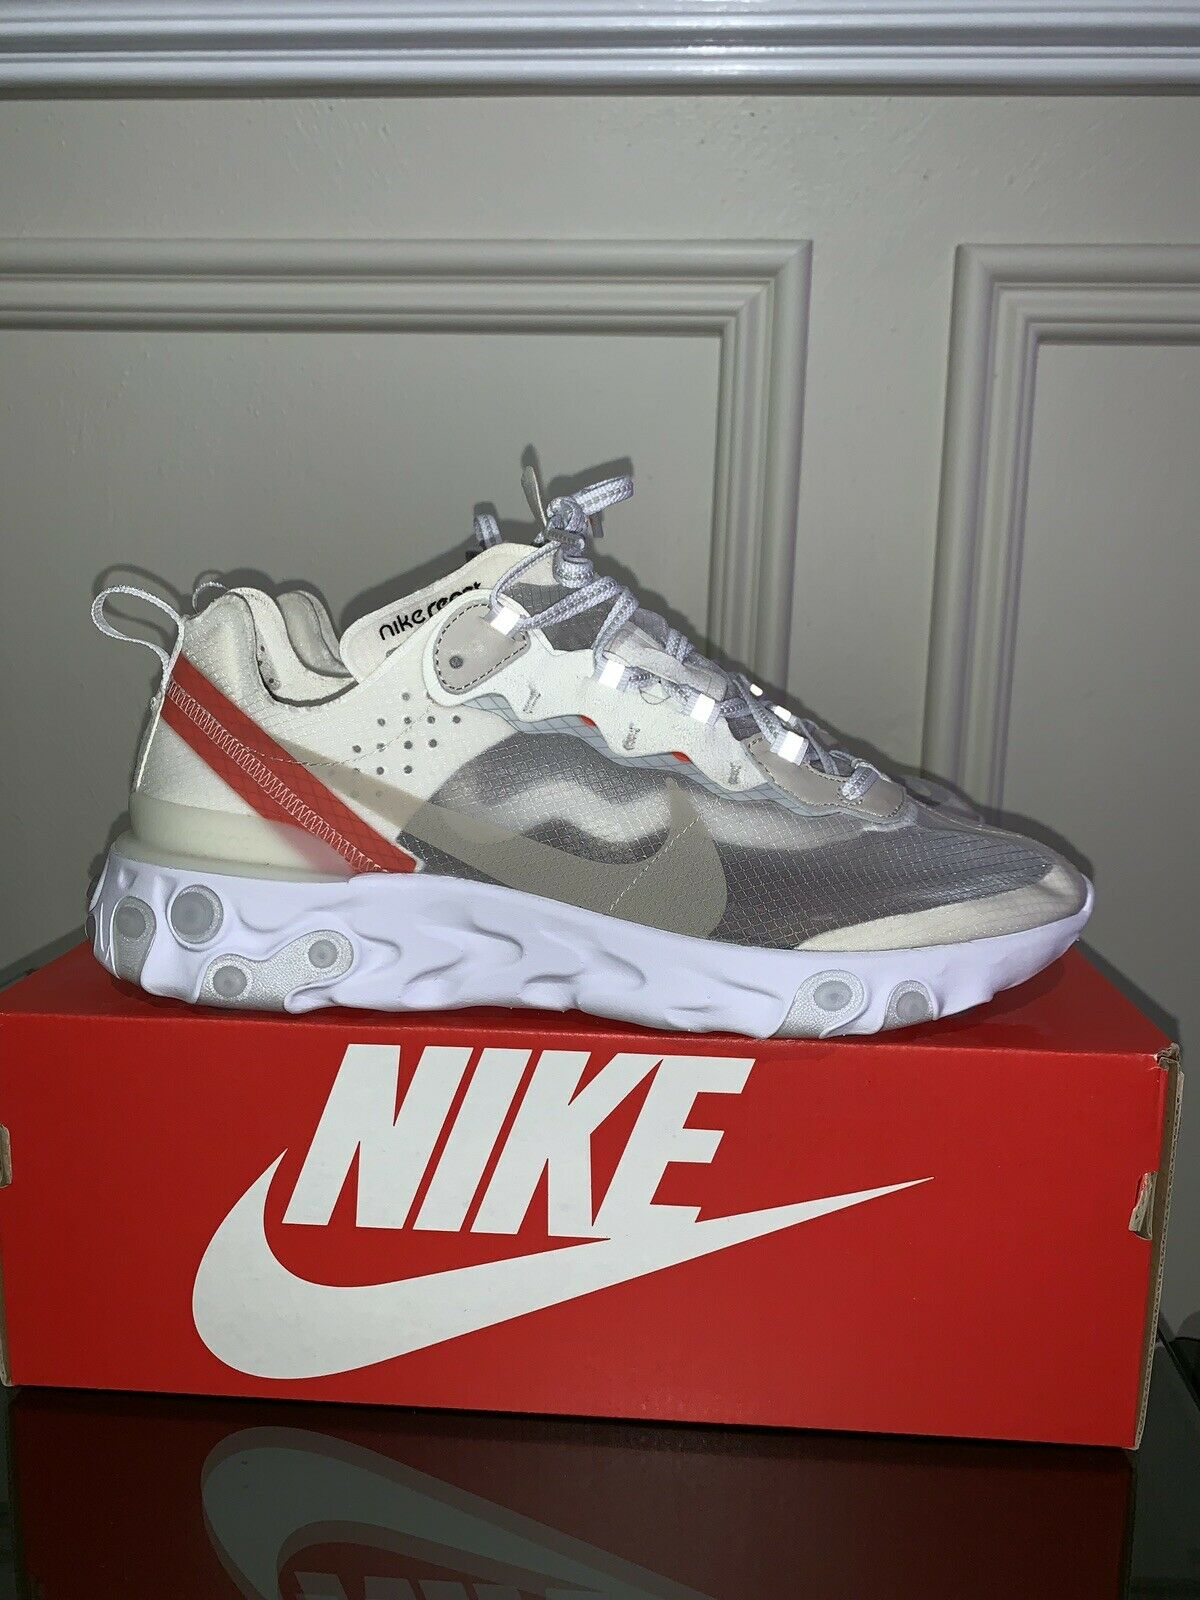 Nike react element 87 sail size 10.5 Used